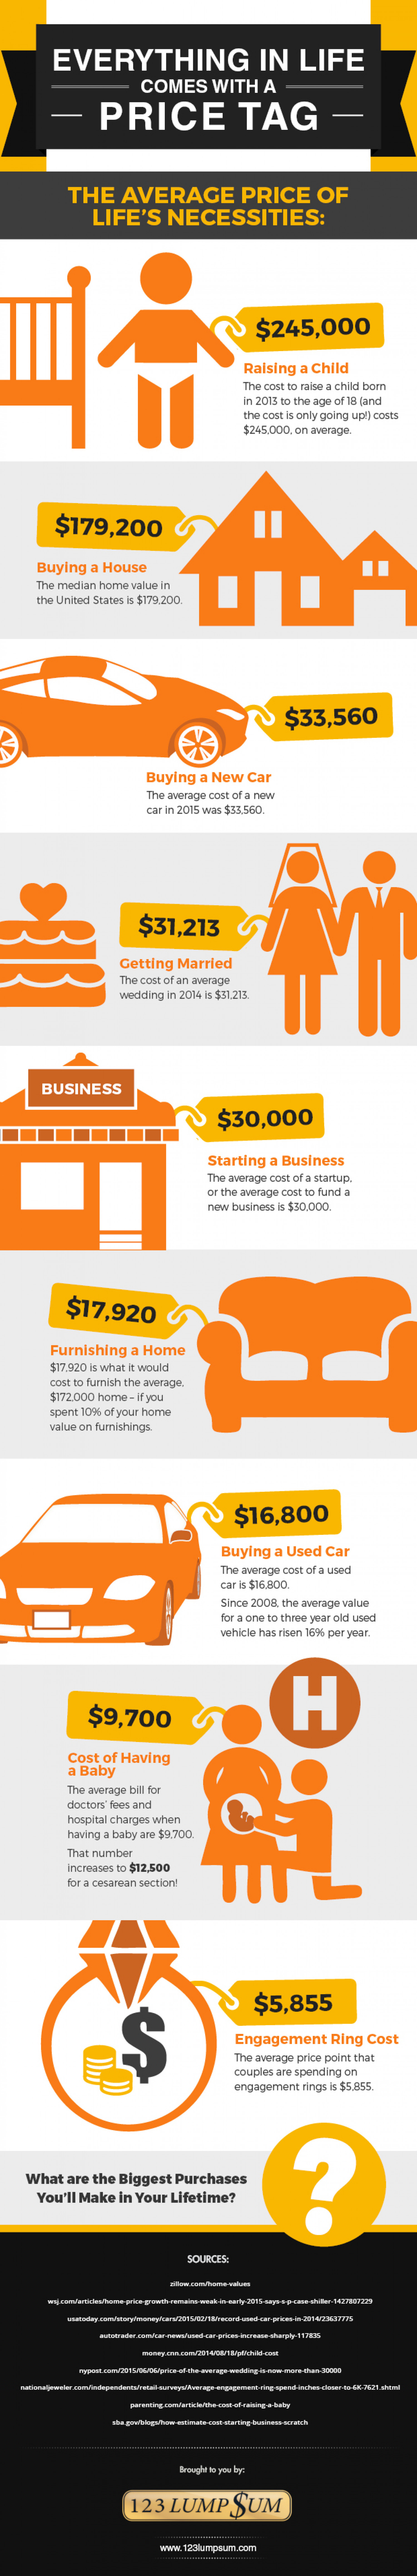 Everything in Life Comes with a Price Tag Infographic